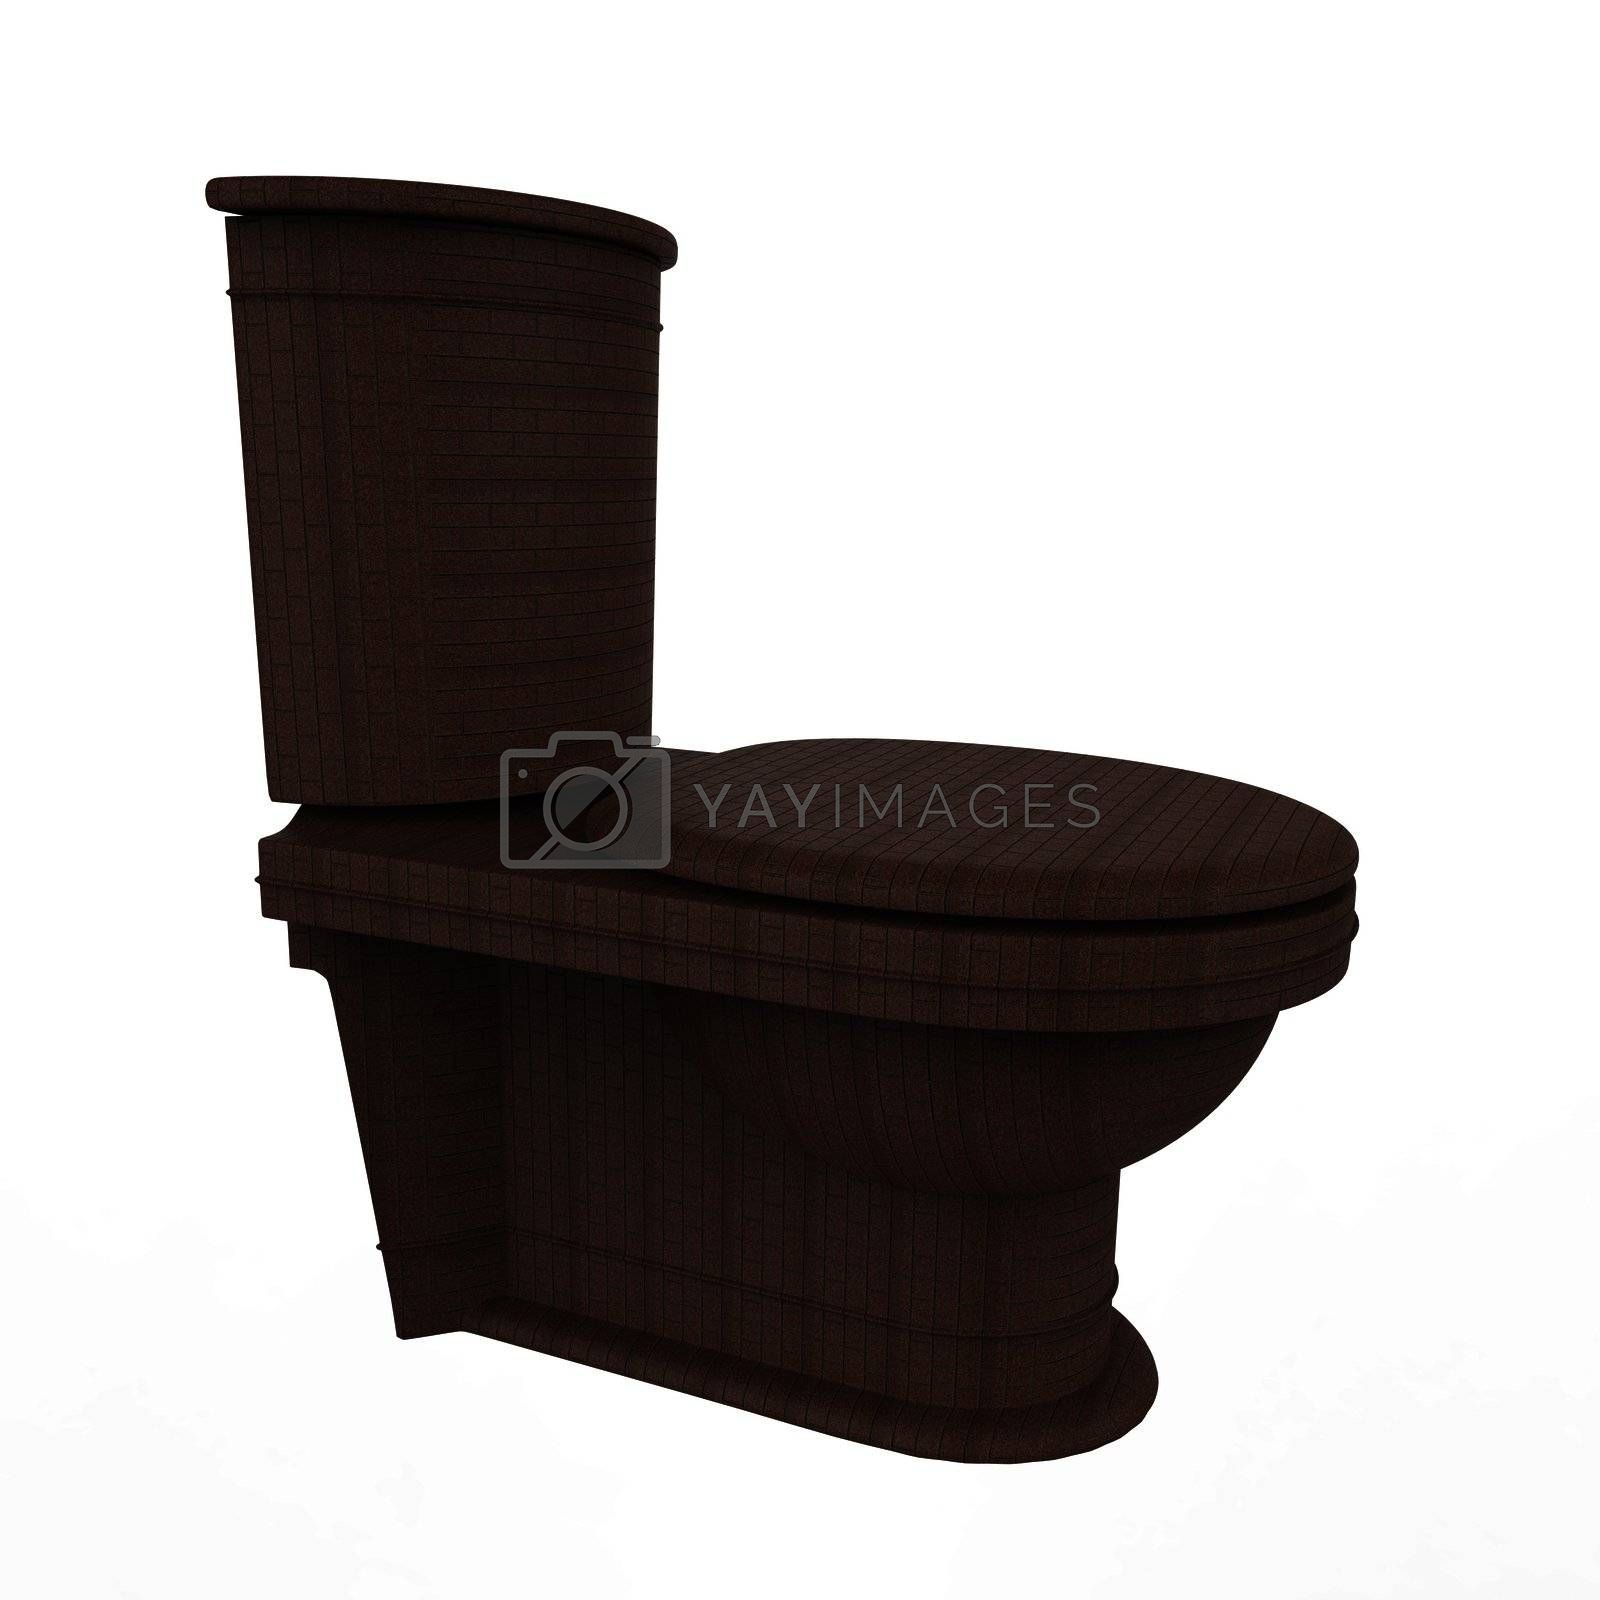 Toilet on a isolated background